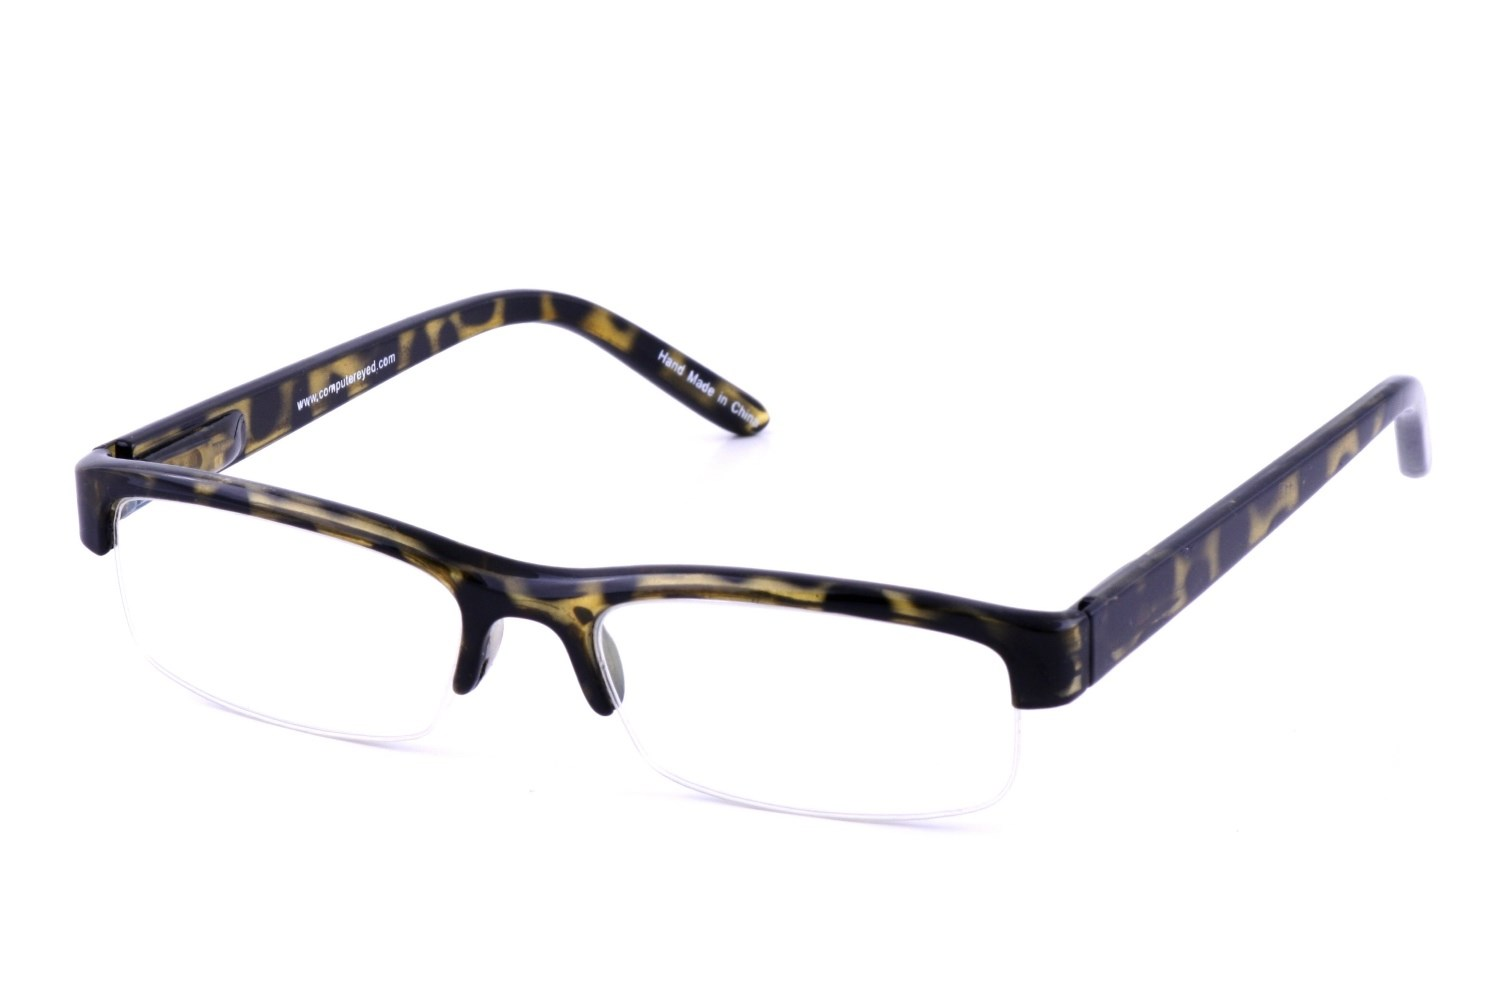 Tortoise Shell Glasses Half Frame : Reading Glasses Computer Vision Aides Contact Lenses ...